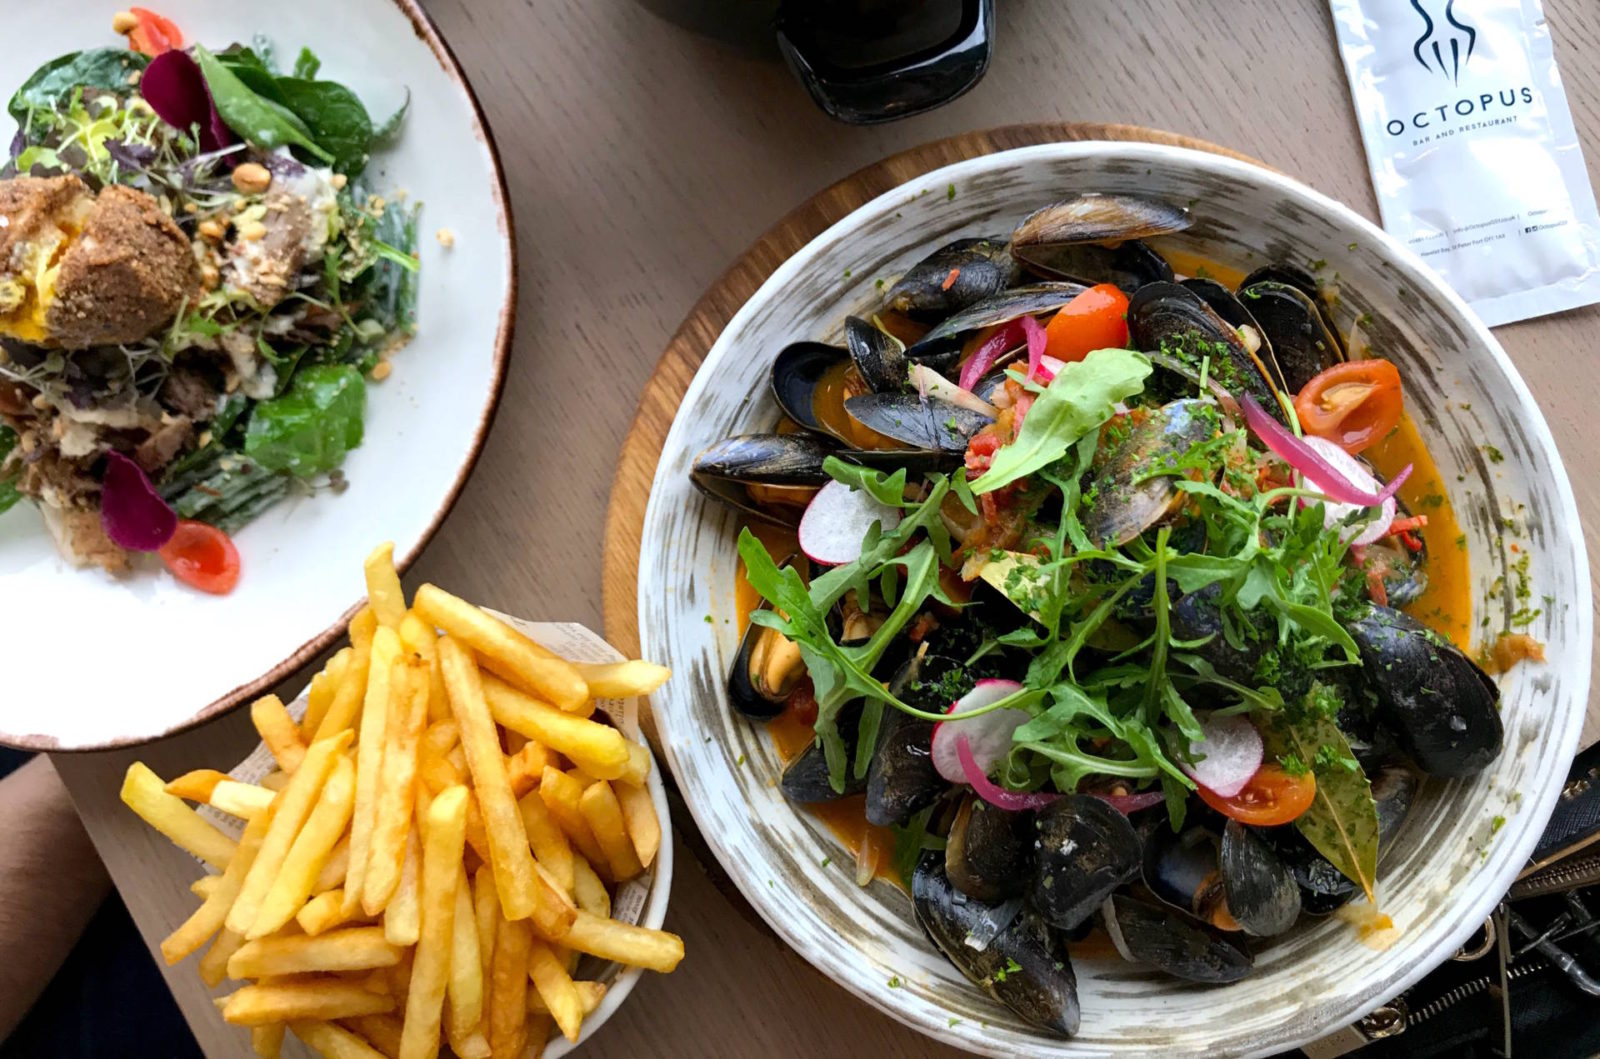 5 Places to Eat in Guernsey - Octopus